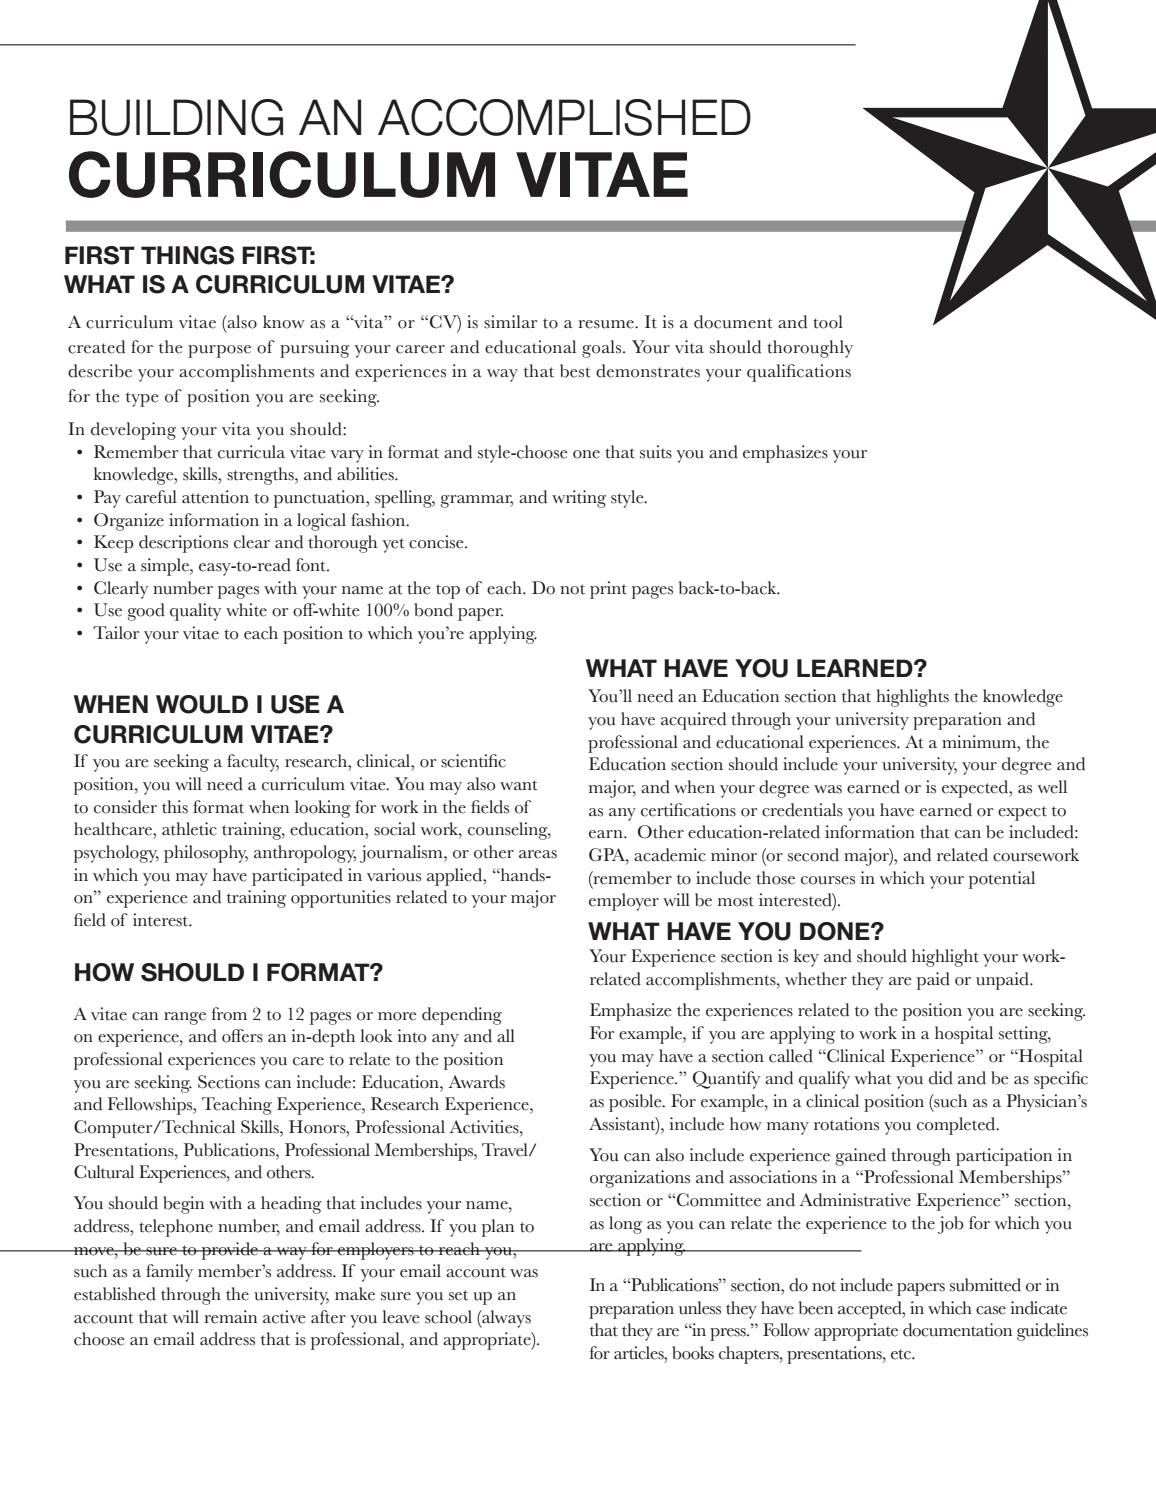 Curriculum Vitae By Texas State University Career Services Issuu